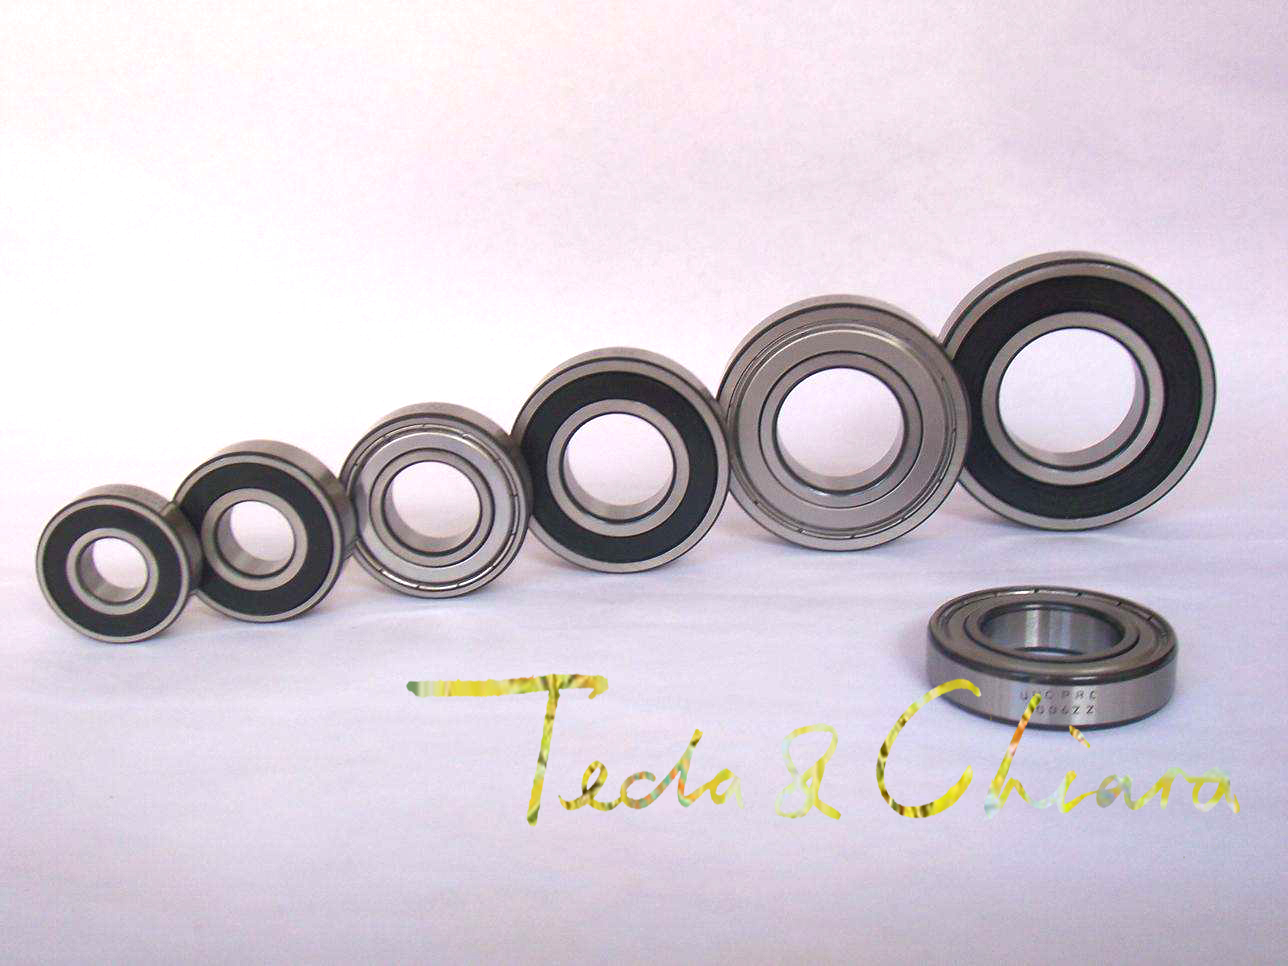 695 695ZZ 695RS 695-2Z 695Z 695-2RS ZZ RS RZ 2RZ Deep Groove Ball Bearings 5 x 13 x 4mm High Quality 6704 6704zz 6704rs 6704 2z 6704z 6704 2rs zz rs rz 2rz deep groove ball bearings 20 x 27 x 4mm high quality